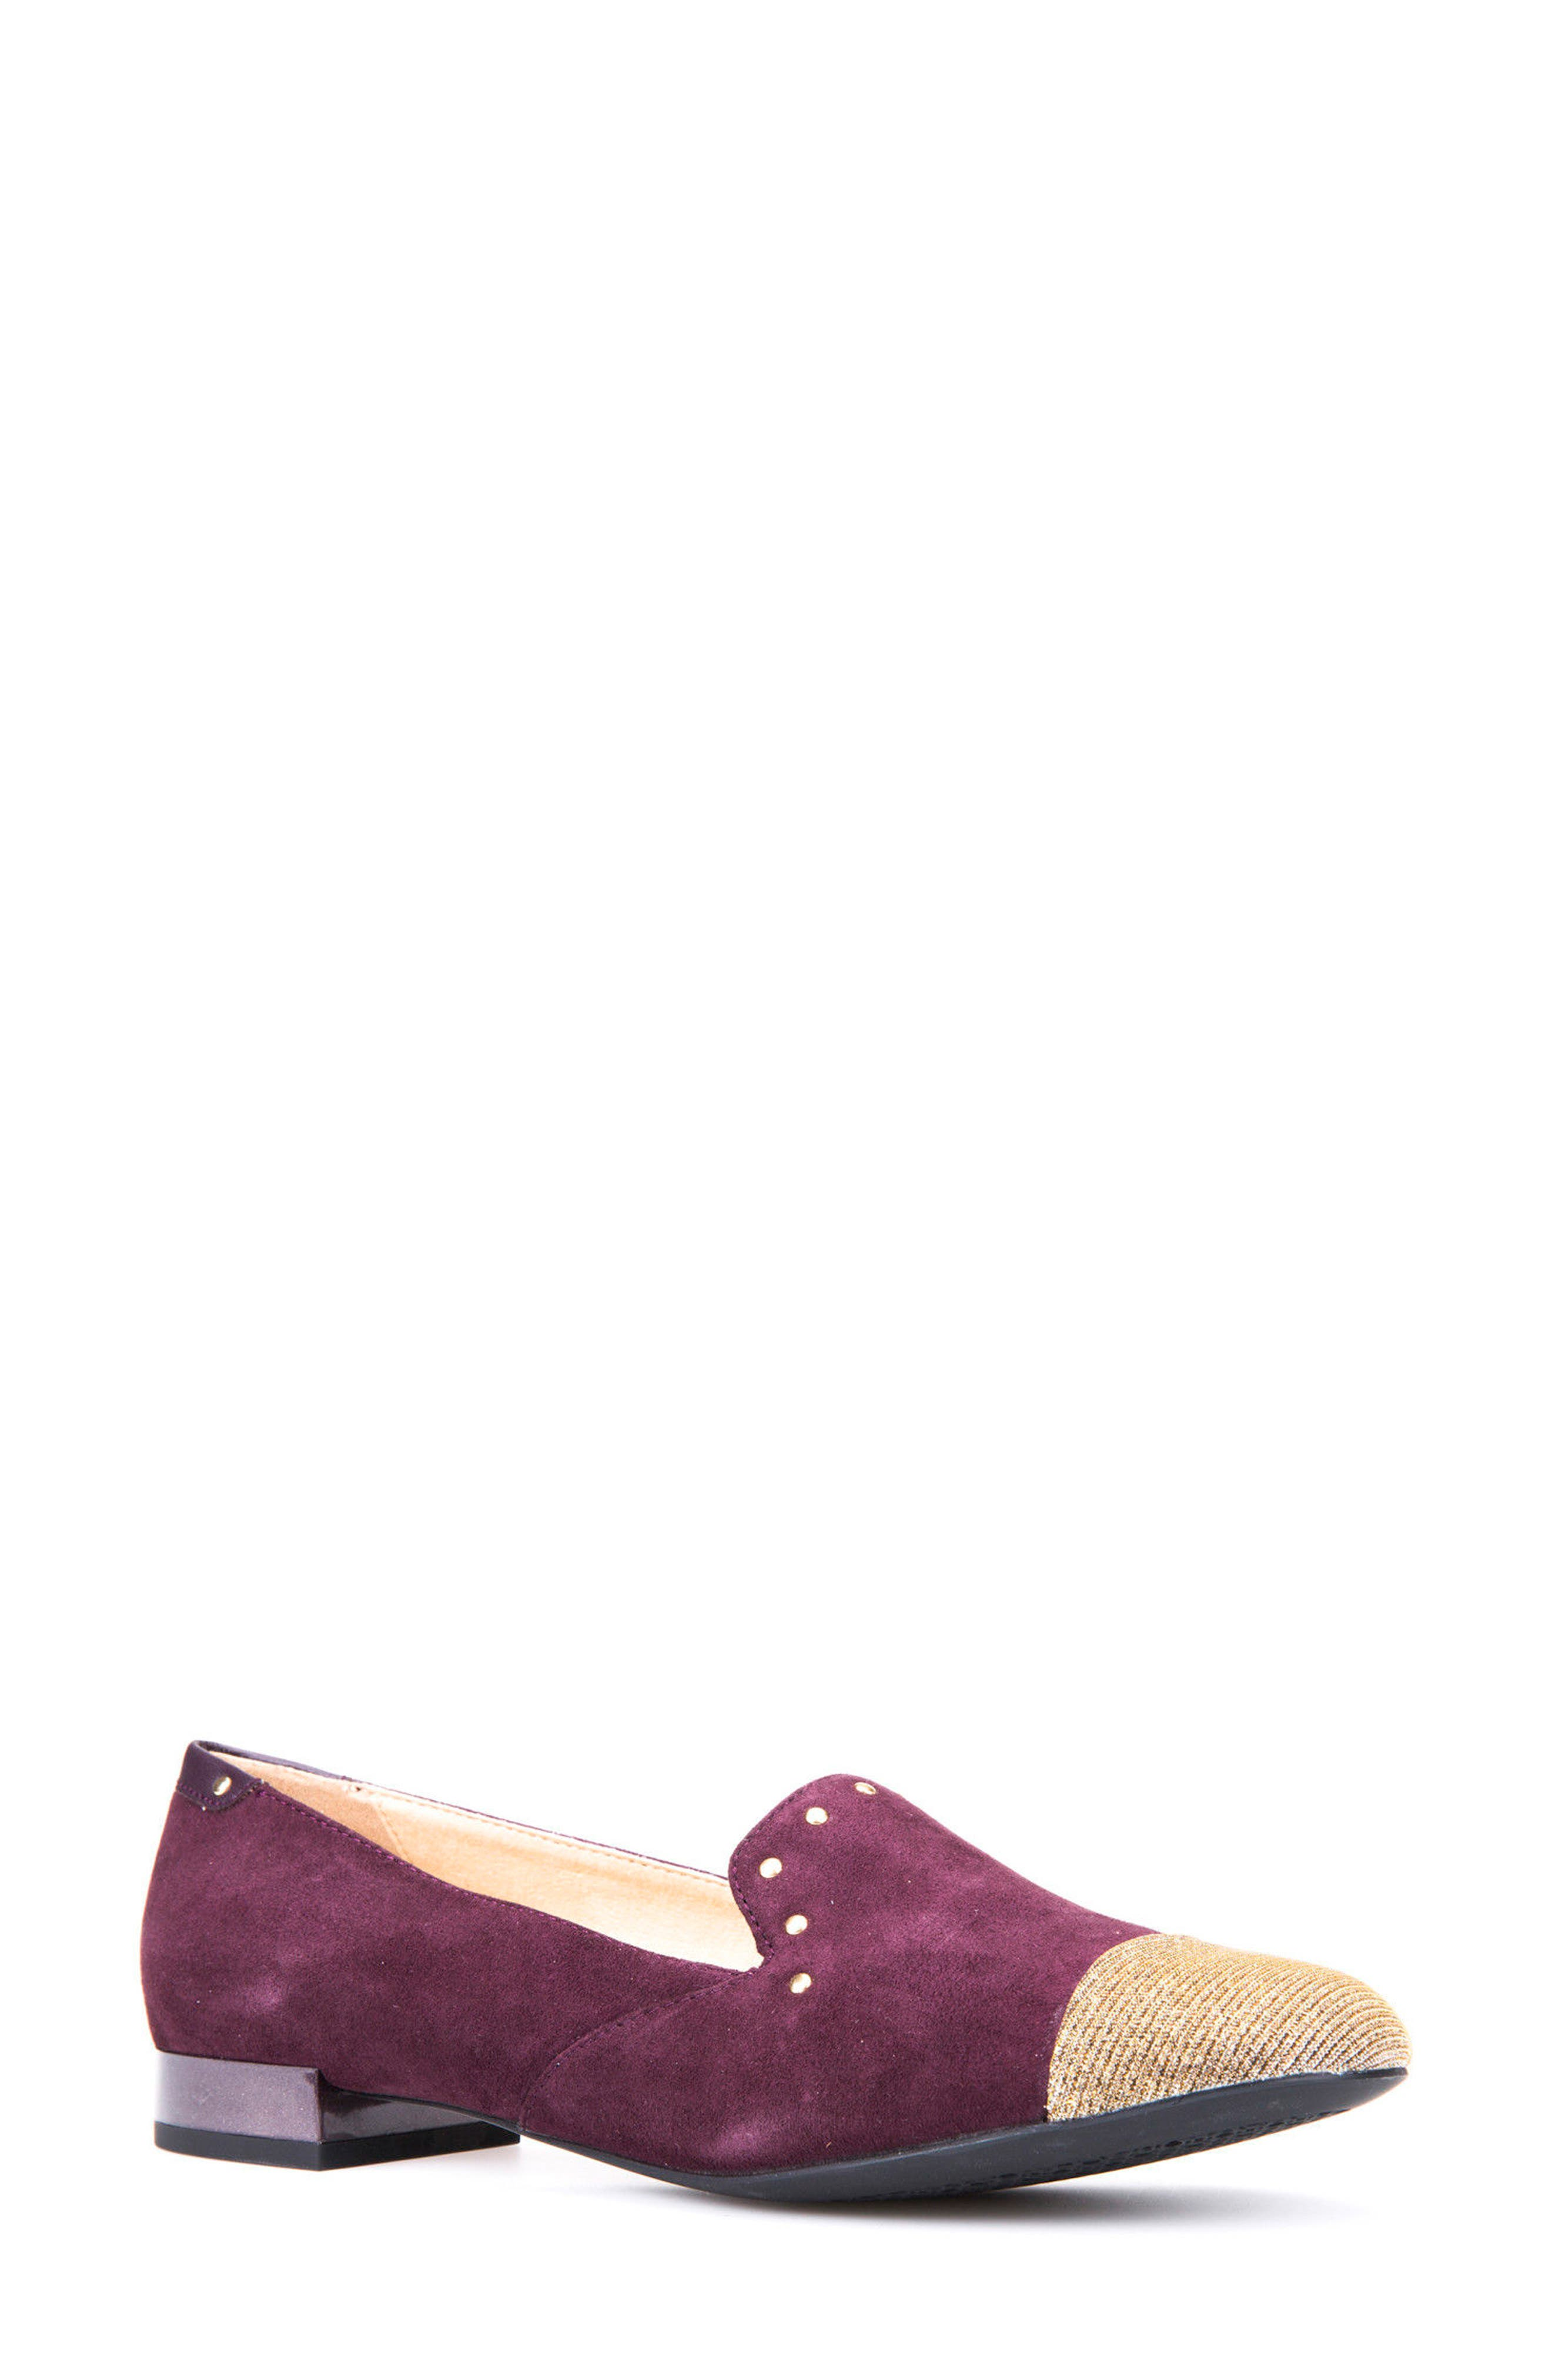 Wistrey Cap Toe Loafer,                             Main thumbnail 2, color,